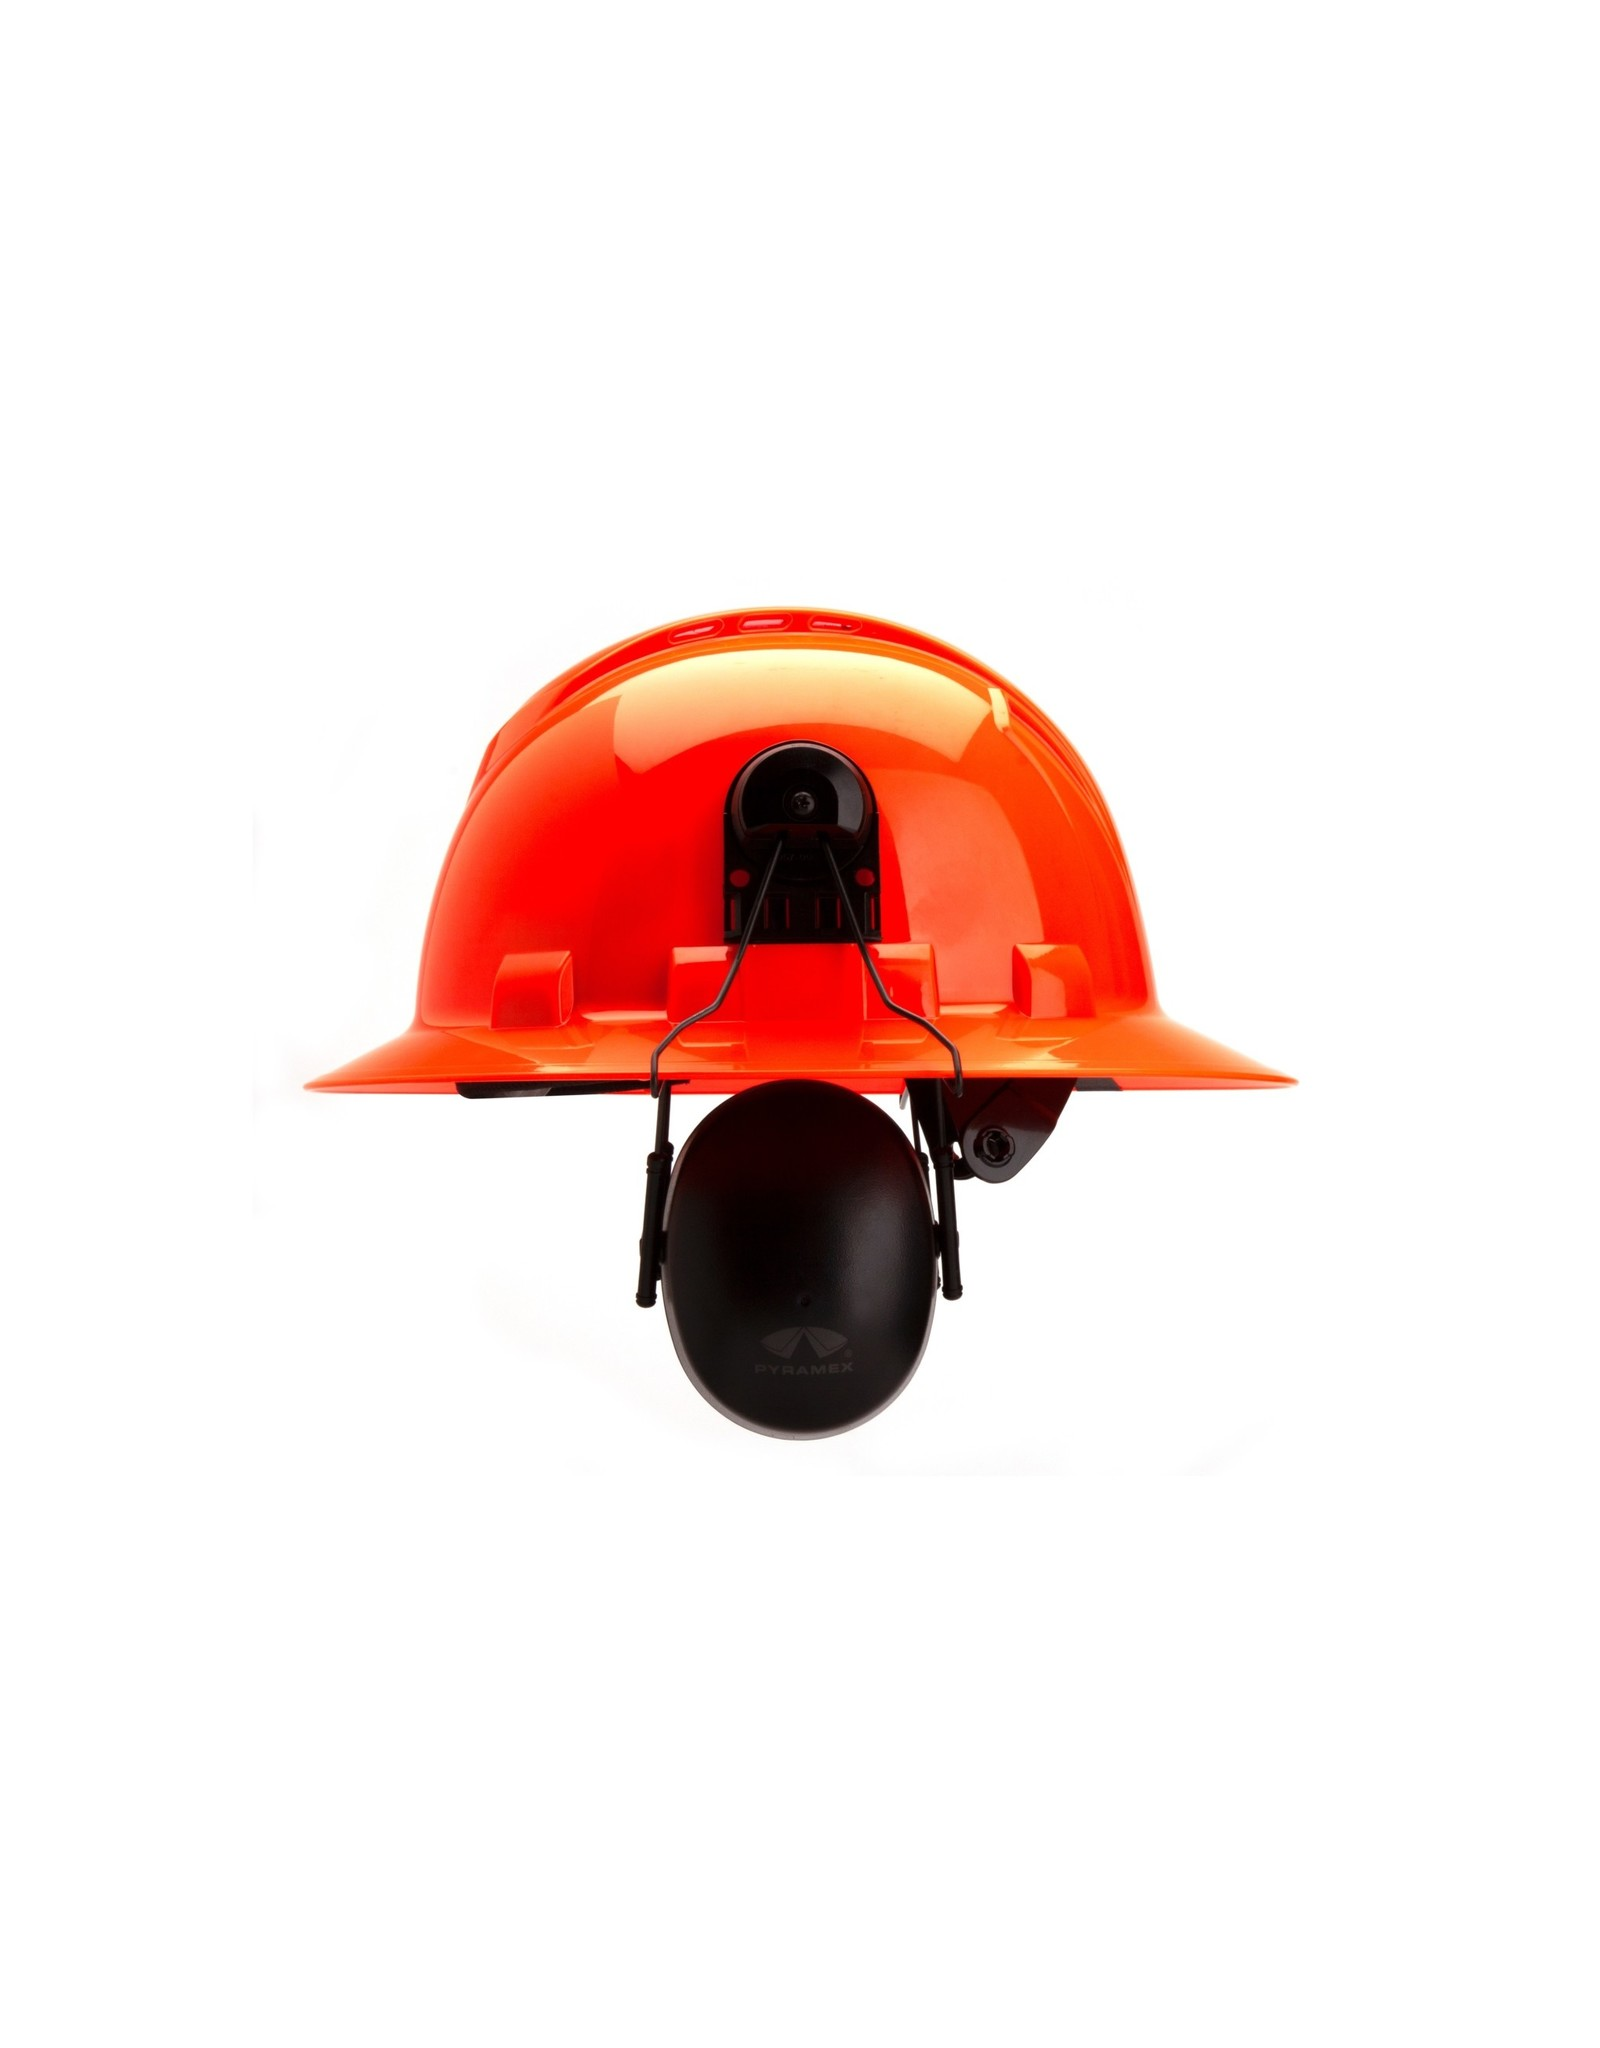 Pyramex Pyramex Hard Hat Mounted Earmuffs